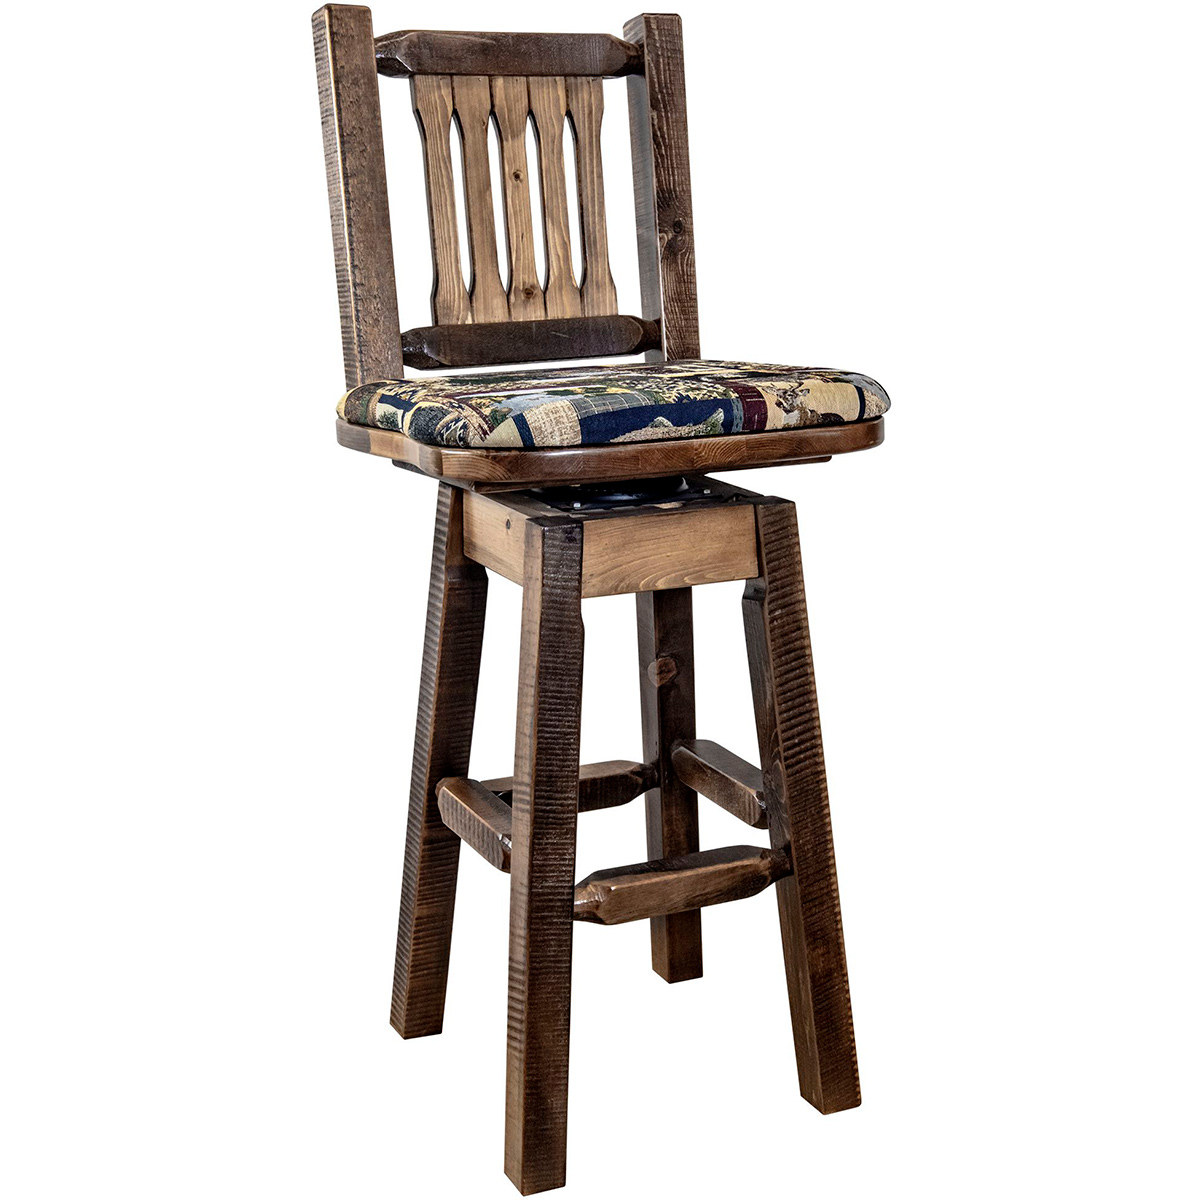 Ranchman's Counter Stool with Back, Swivel, Woodland Upholstery, Stain & Clear Lacquer Finish